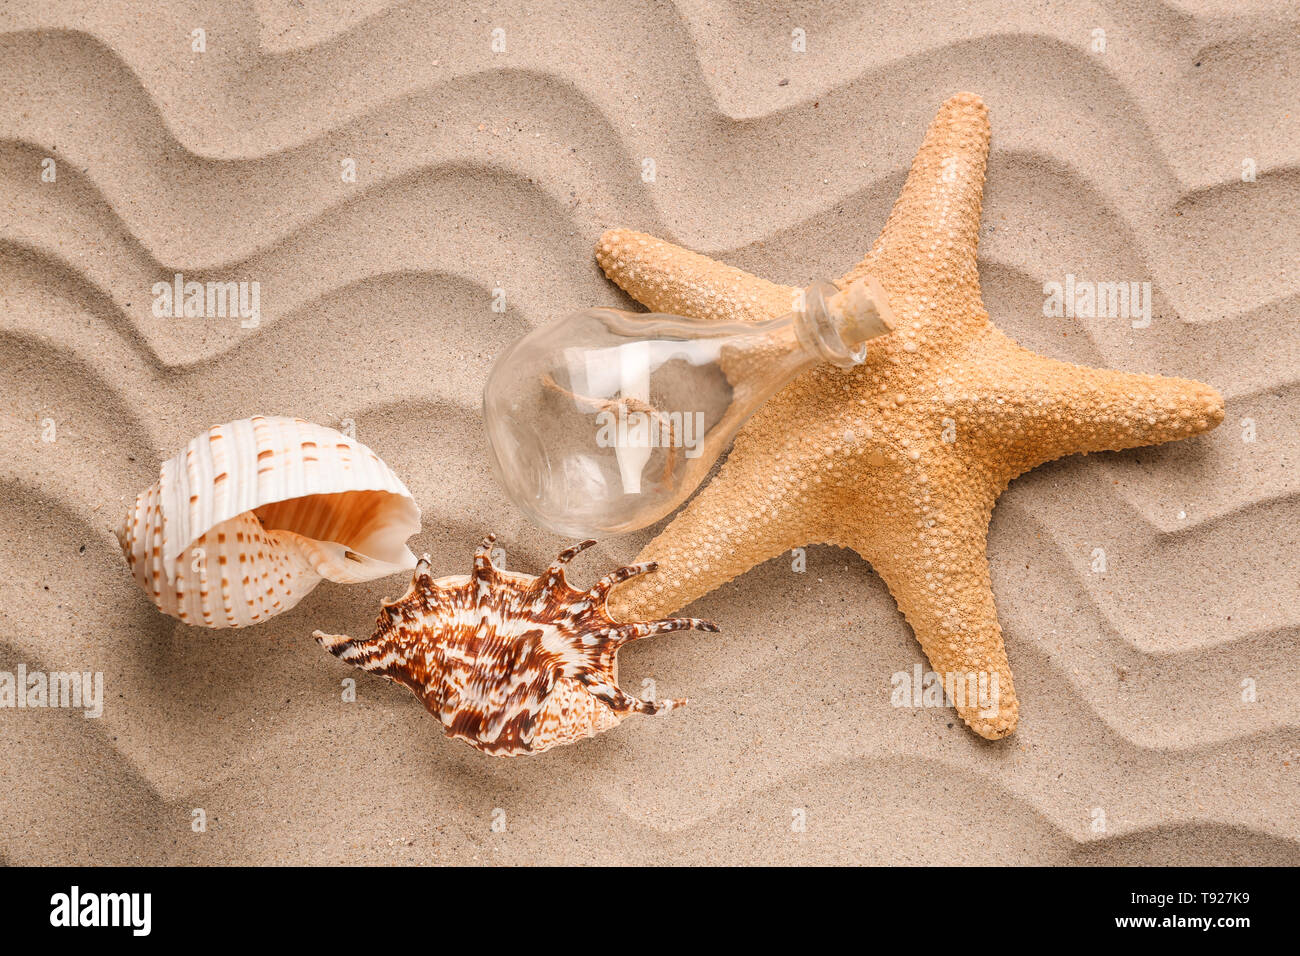 Sea shells with starfish and glass bottle on sand - Stock Image